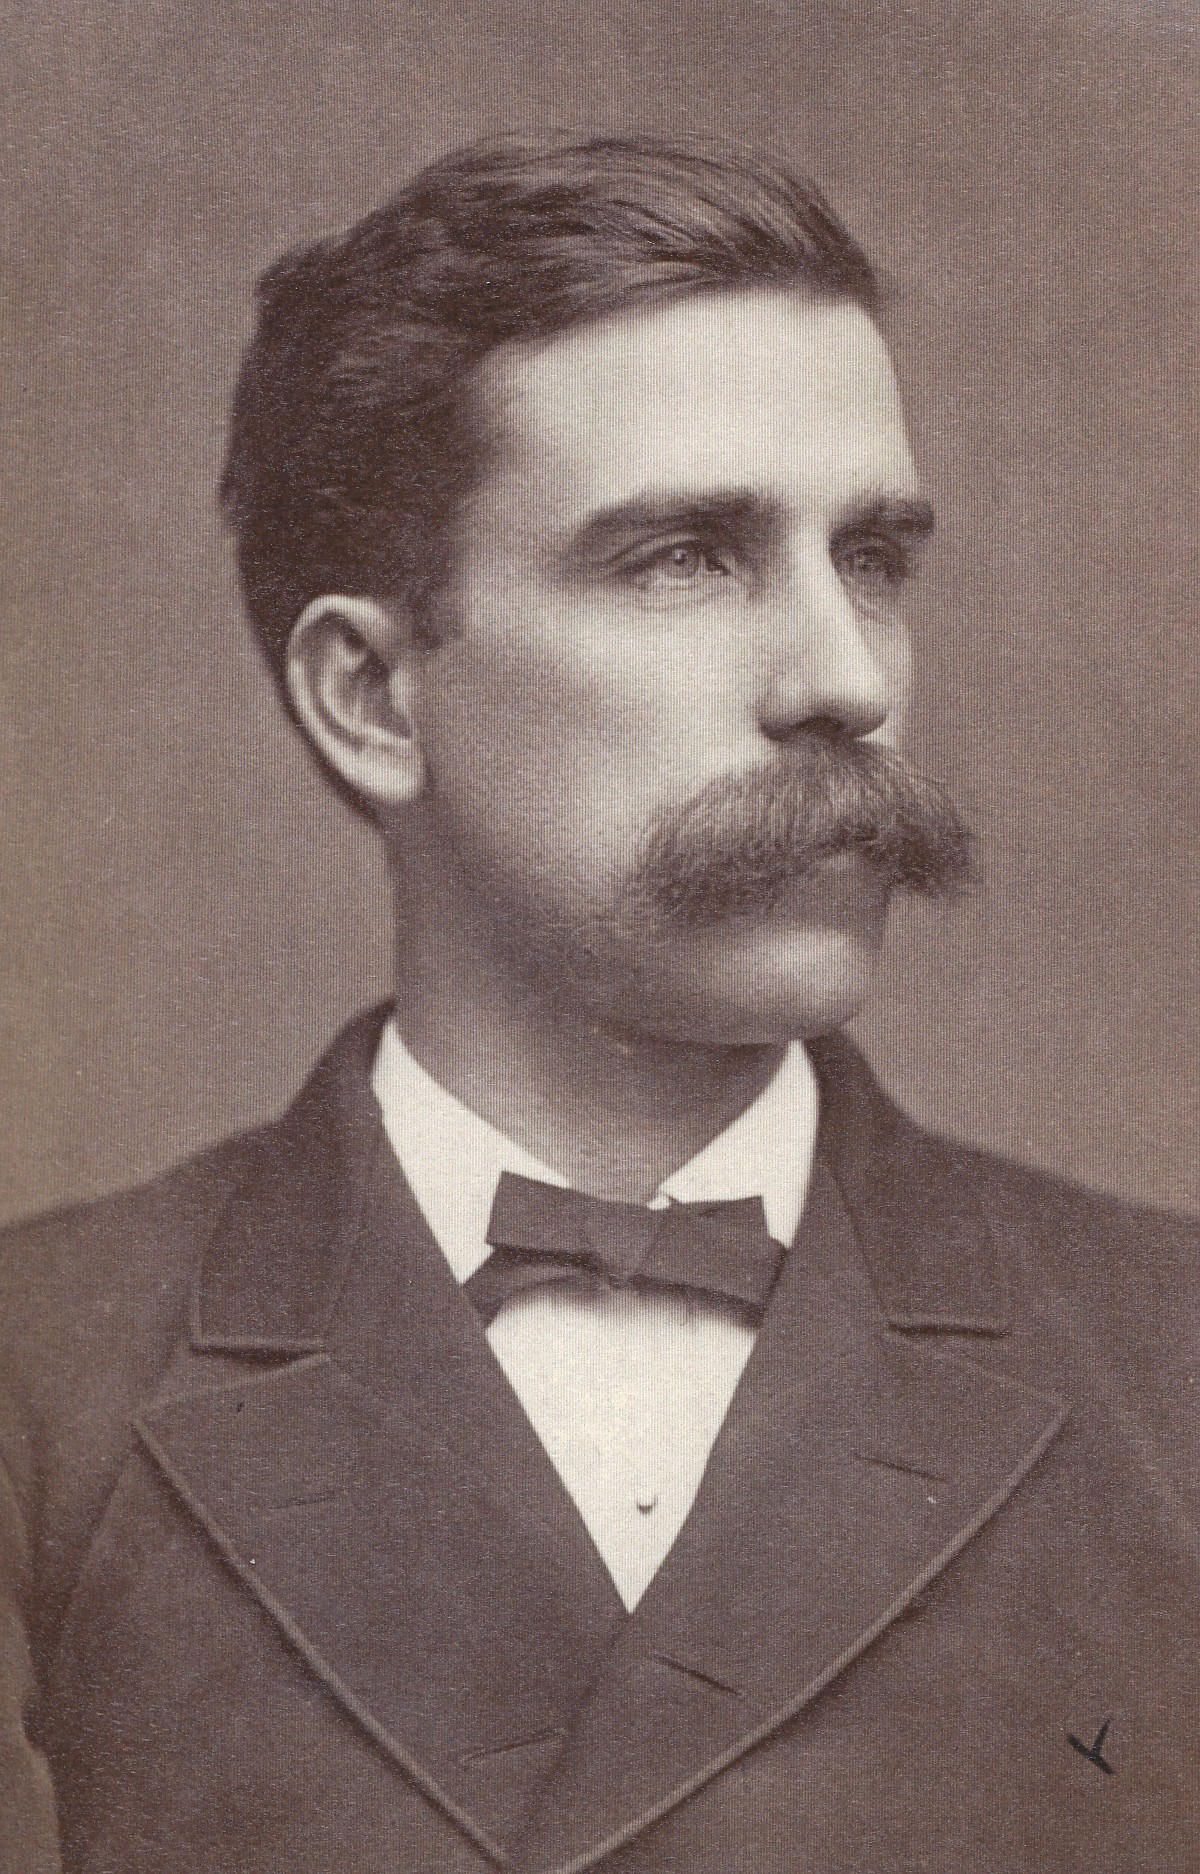 Chester Congdon in 1882 when he moved to Duluth.